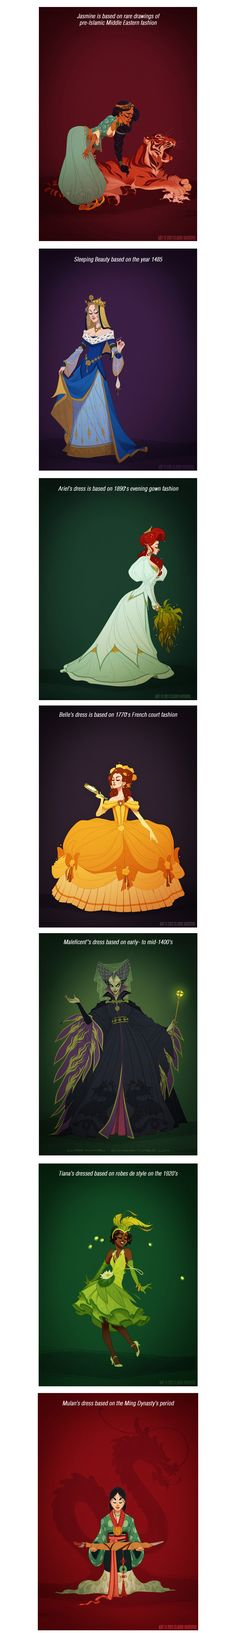 Disney princesses (and one awesome villain) in period dress.